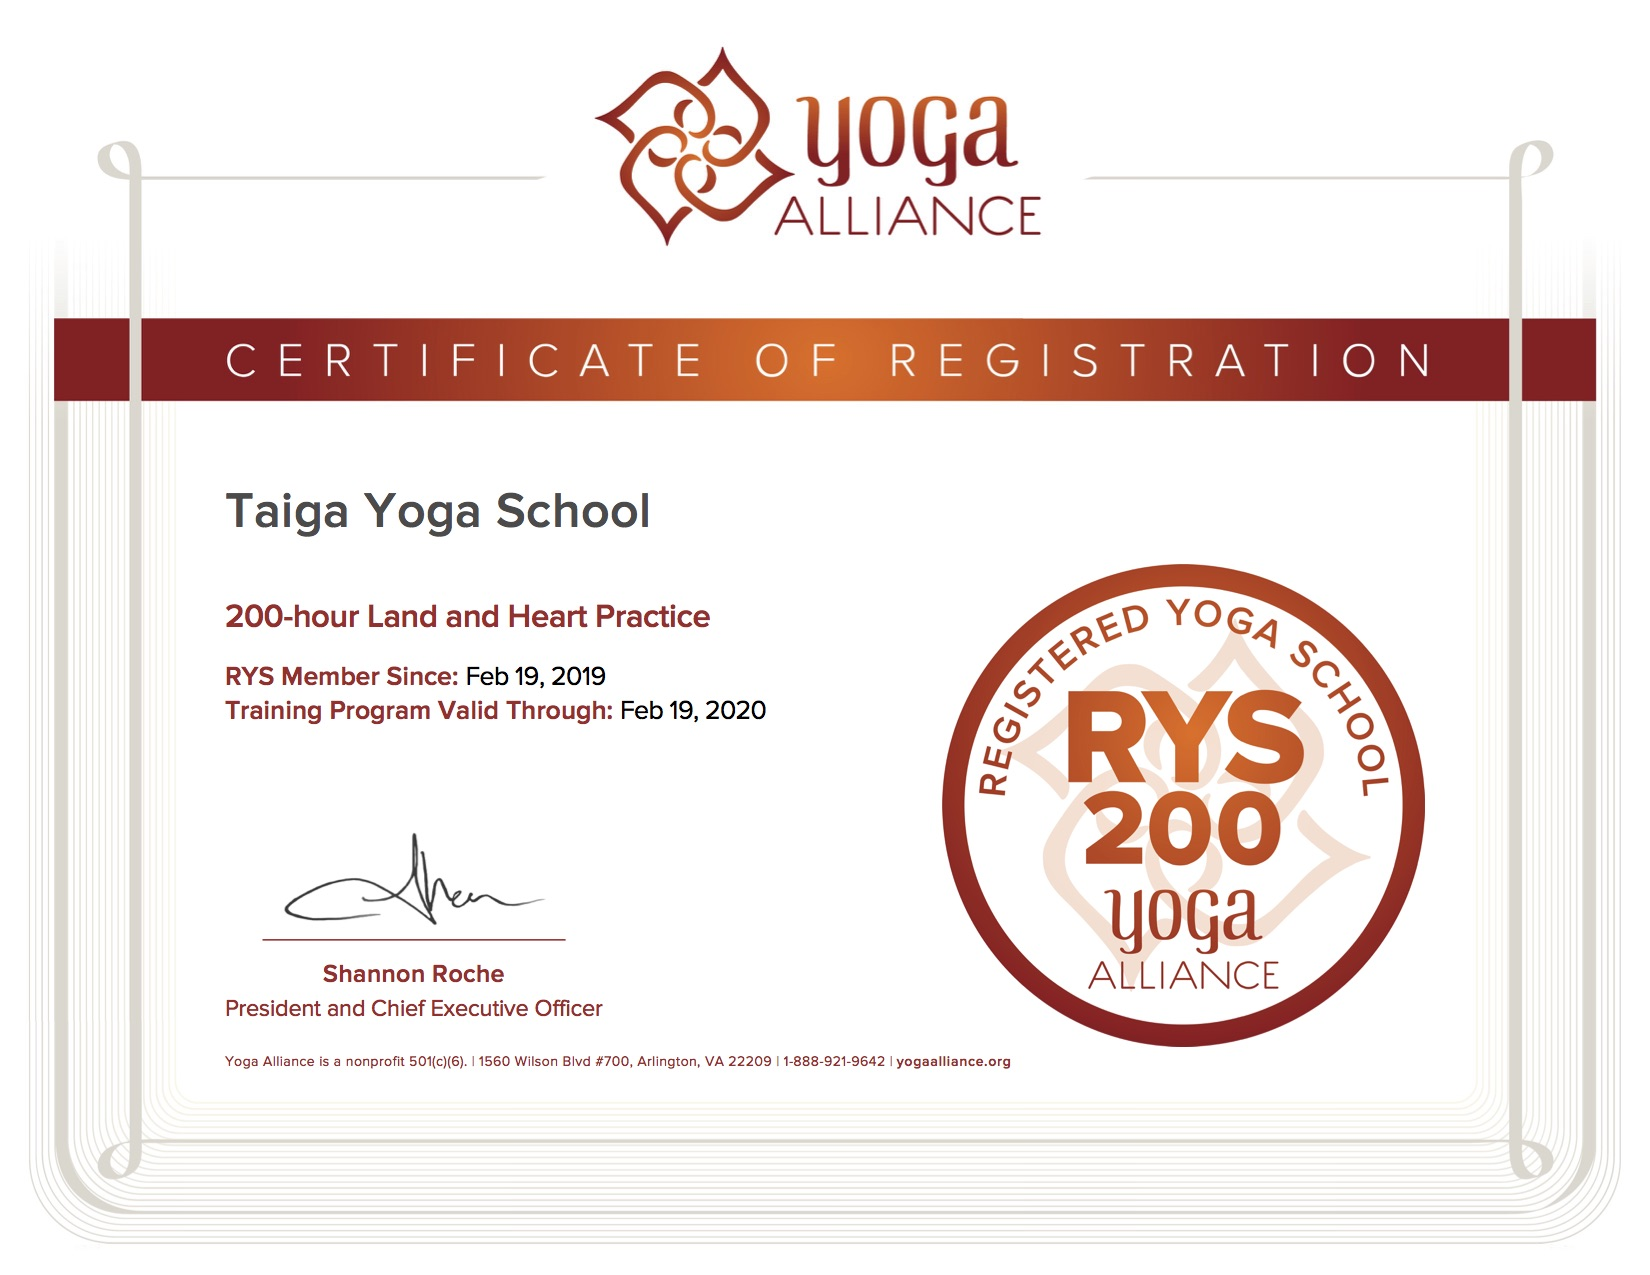 200-hour Land and Heart Practice Certificate.jpg